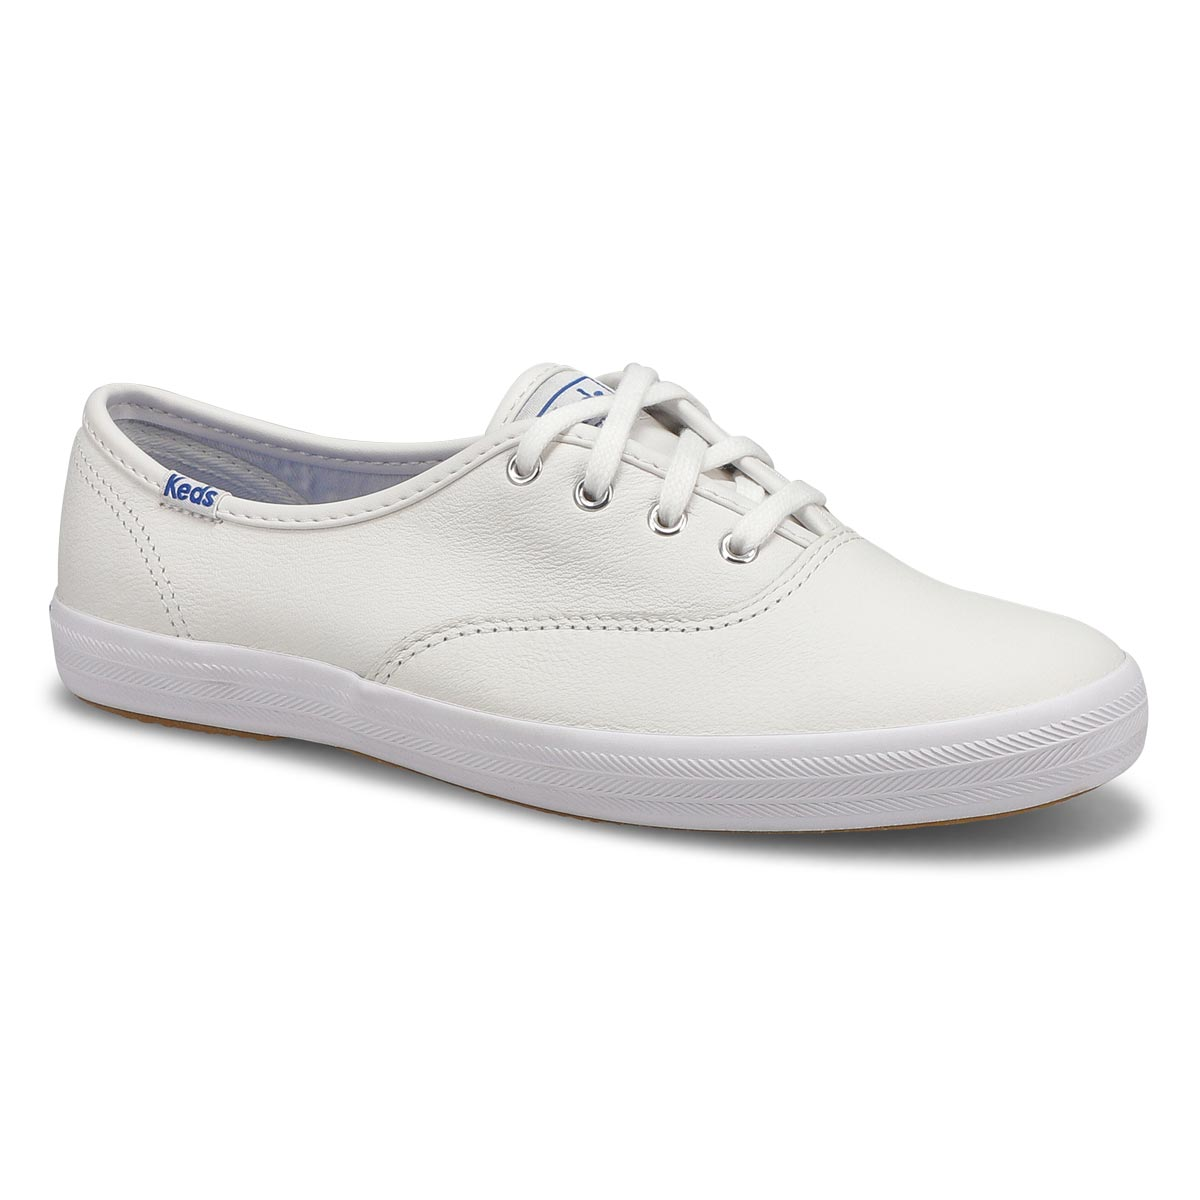 Women's CHAMPION OXFORD white leather sneakers